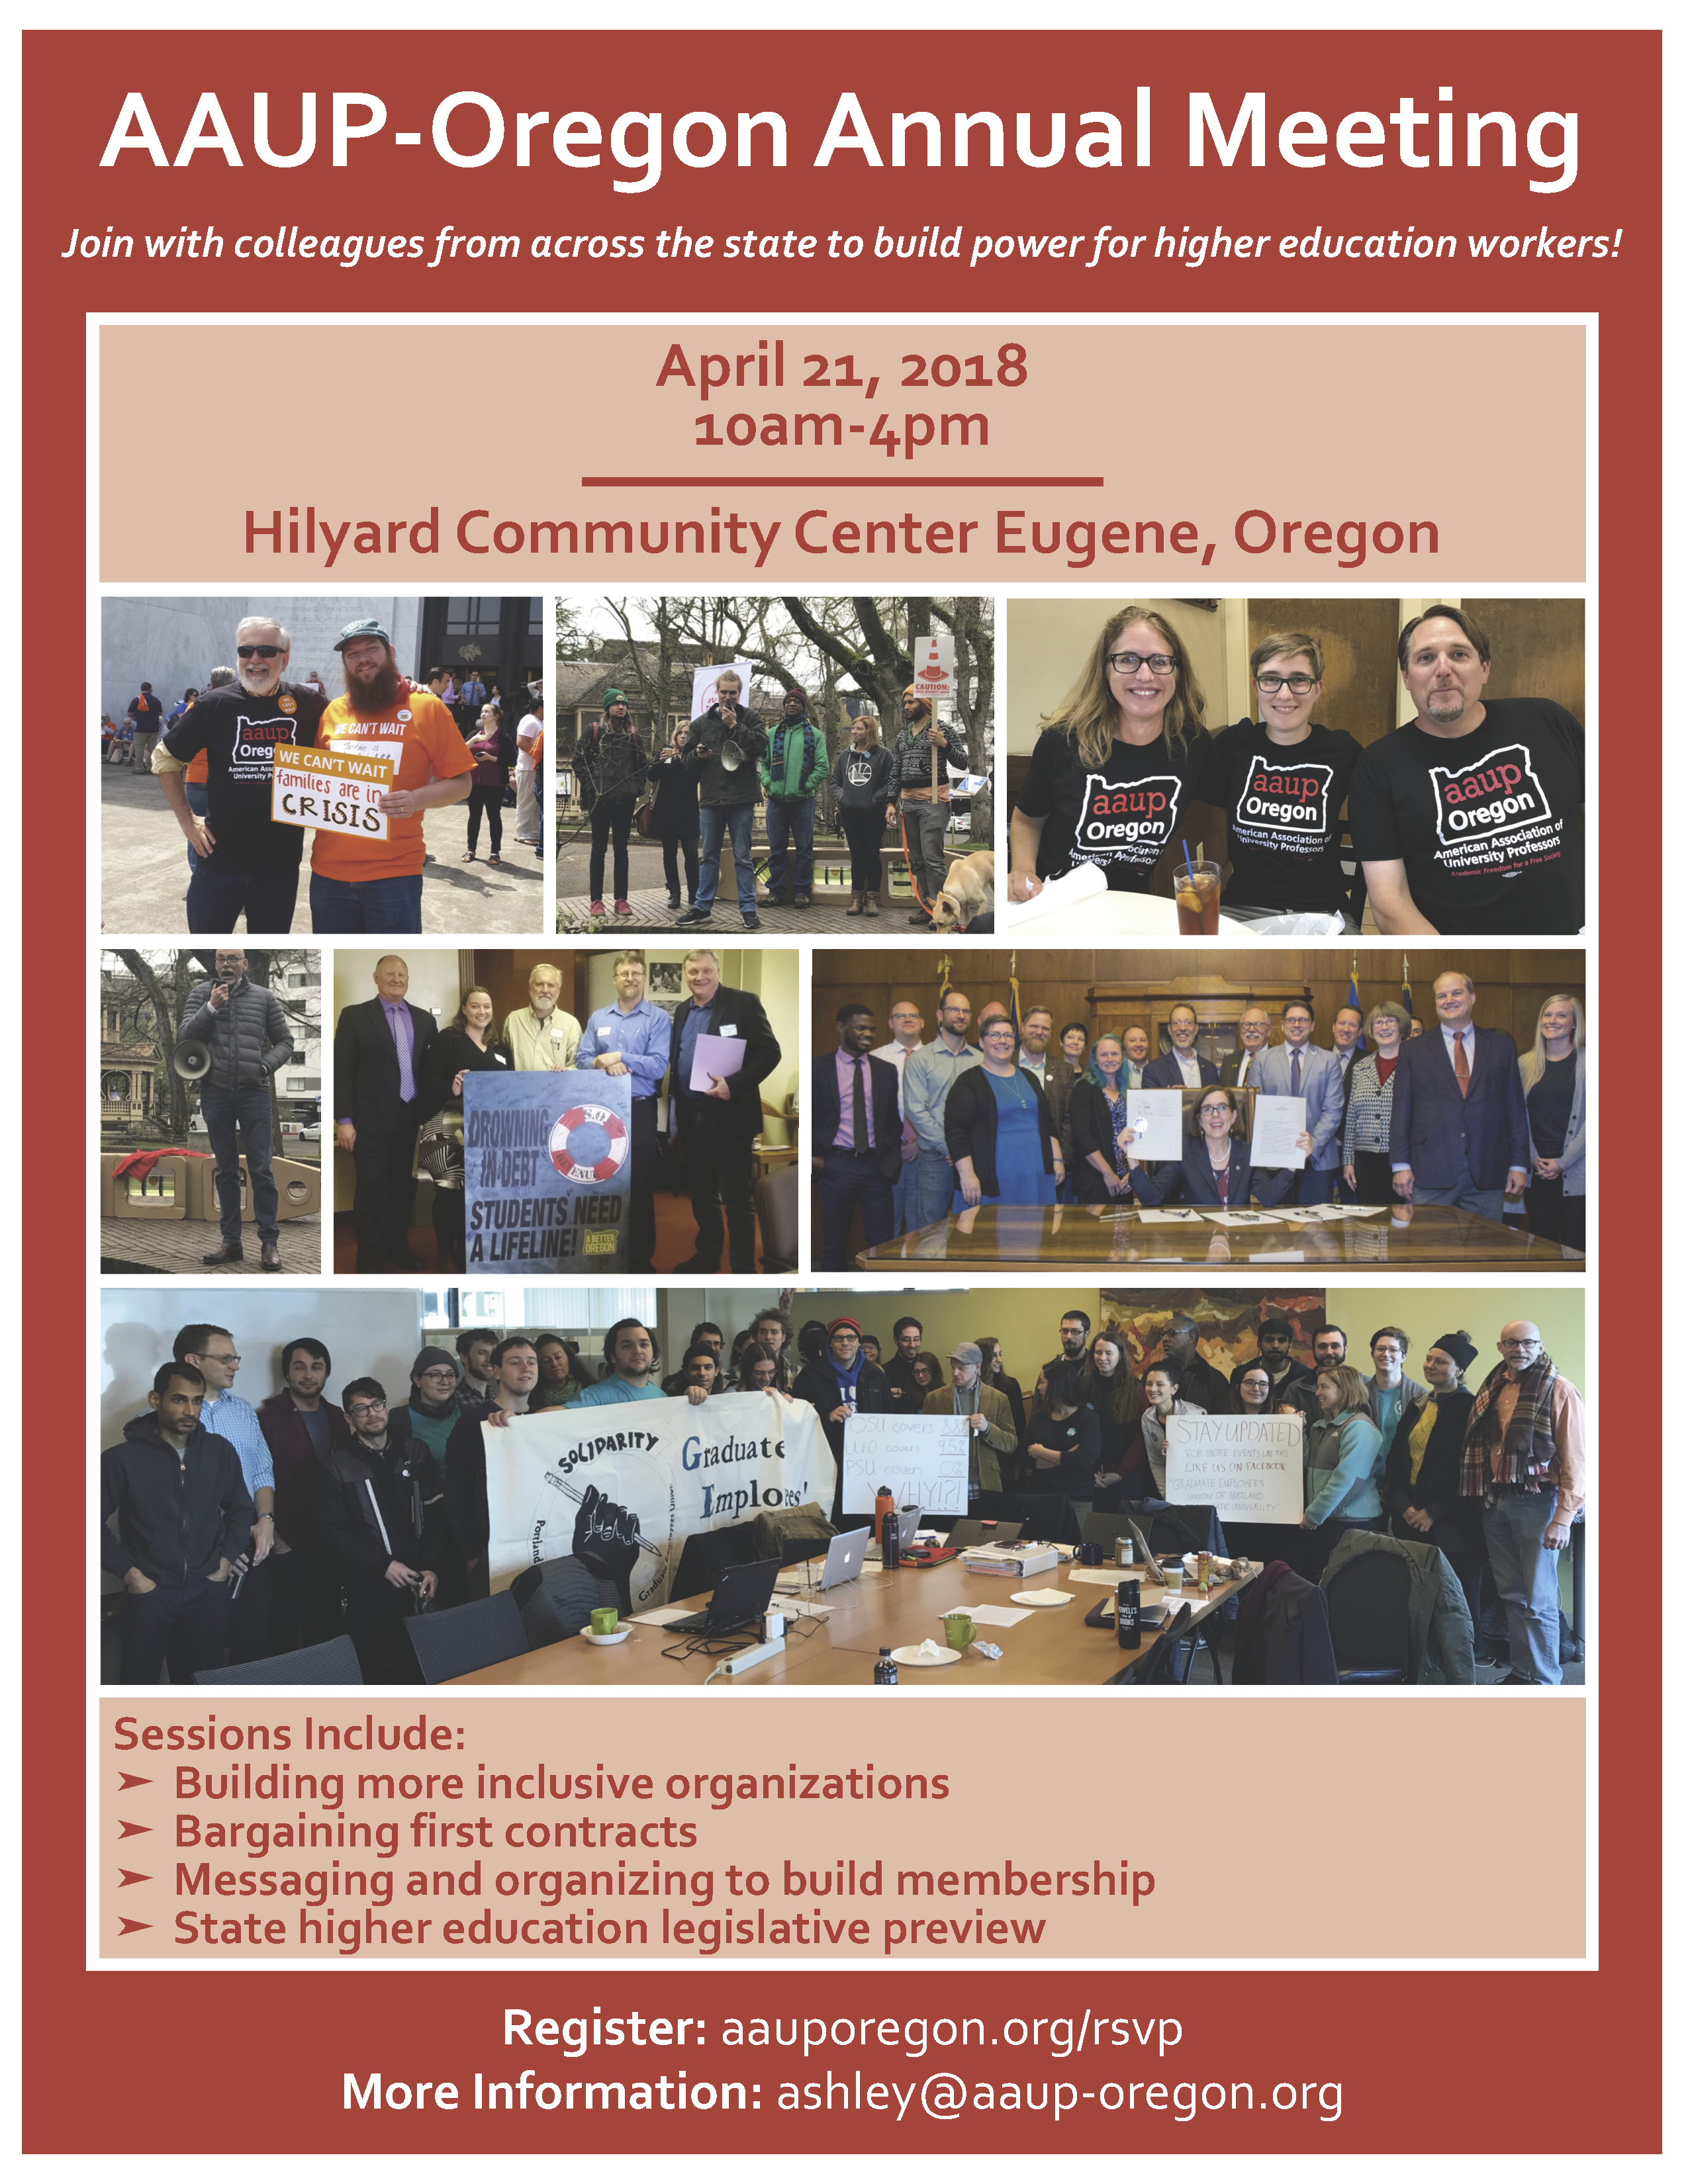 PSU AAUP | AAUP-Oregon Annual Meeting April 21 10-4 Please